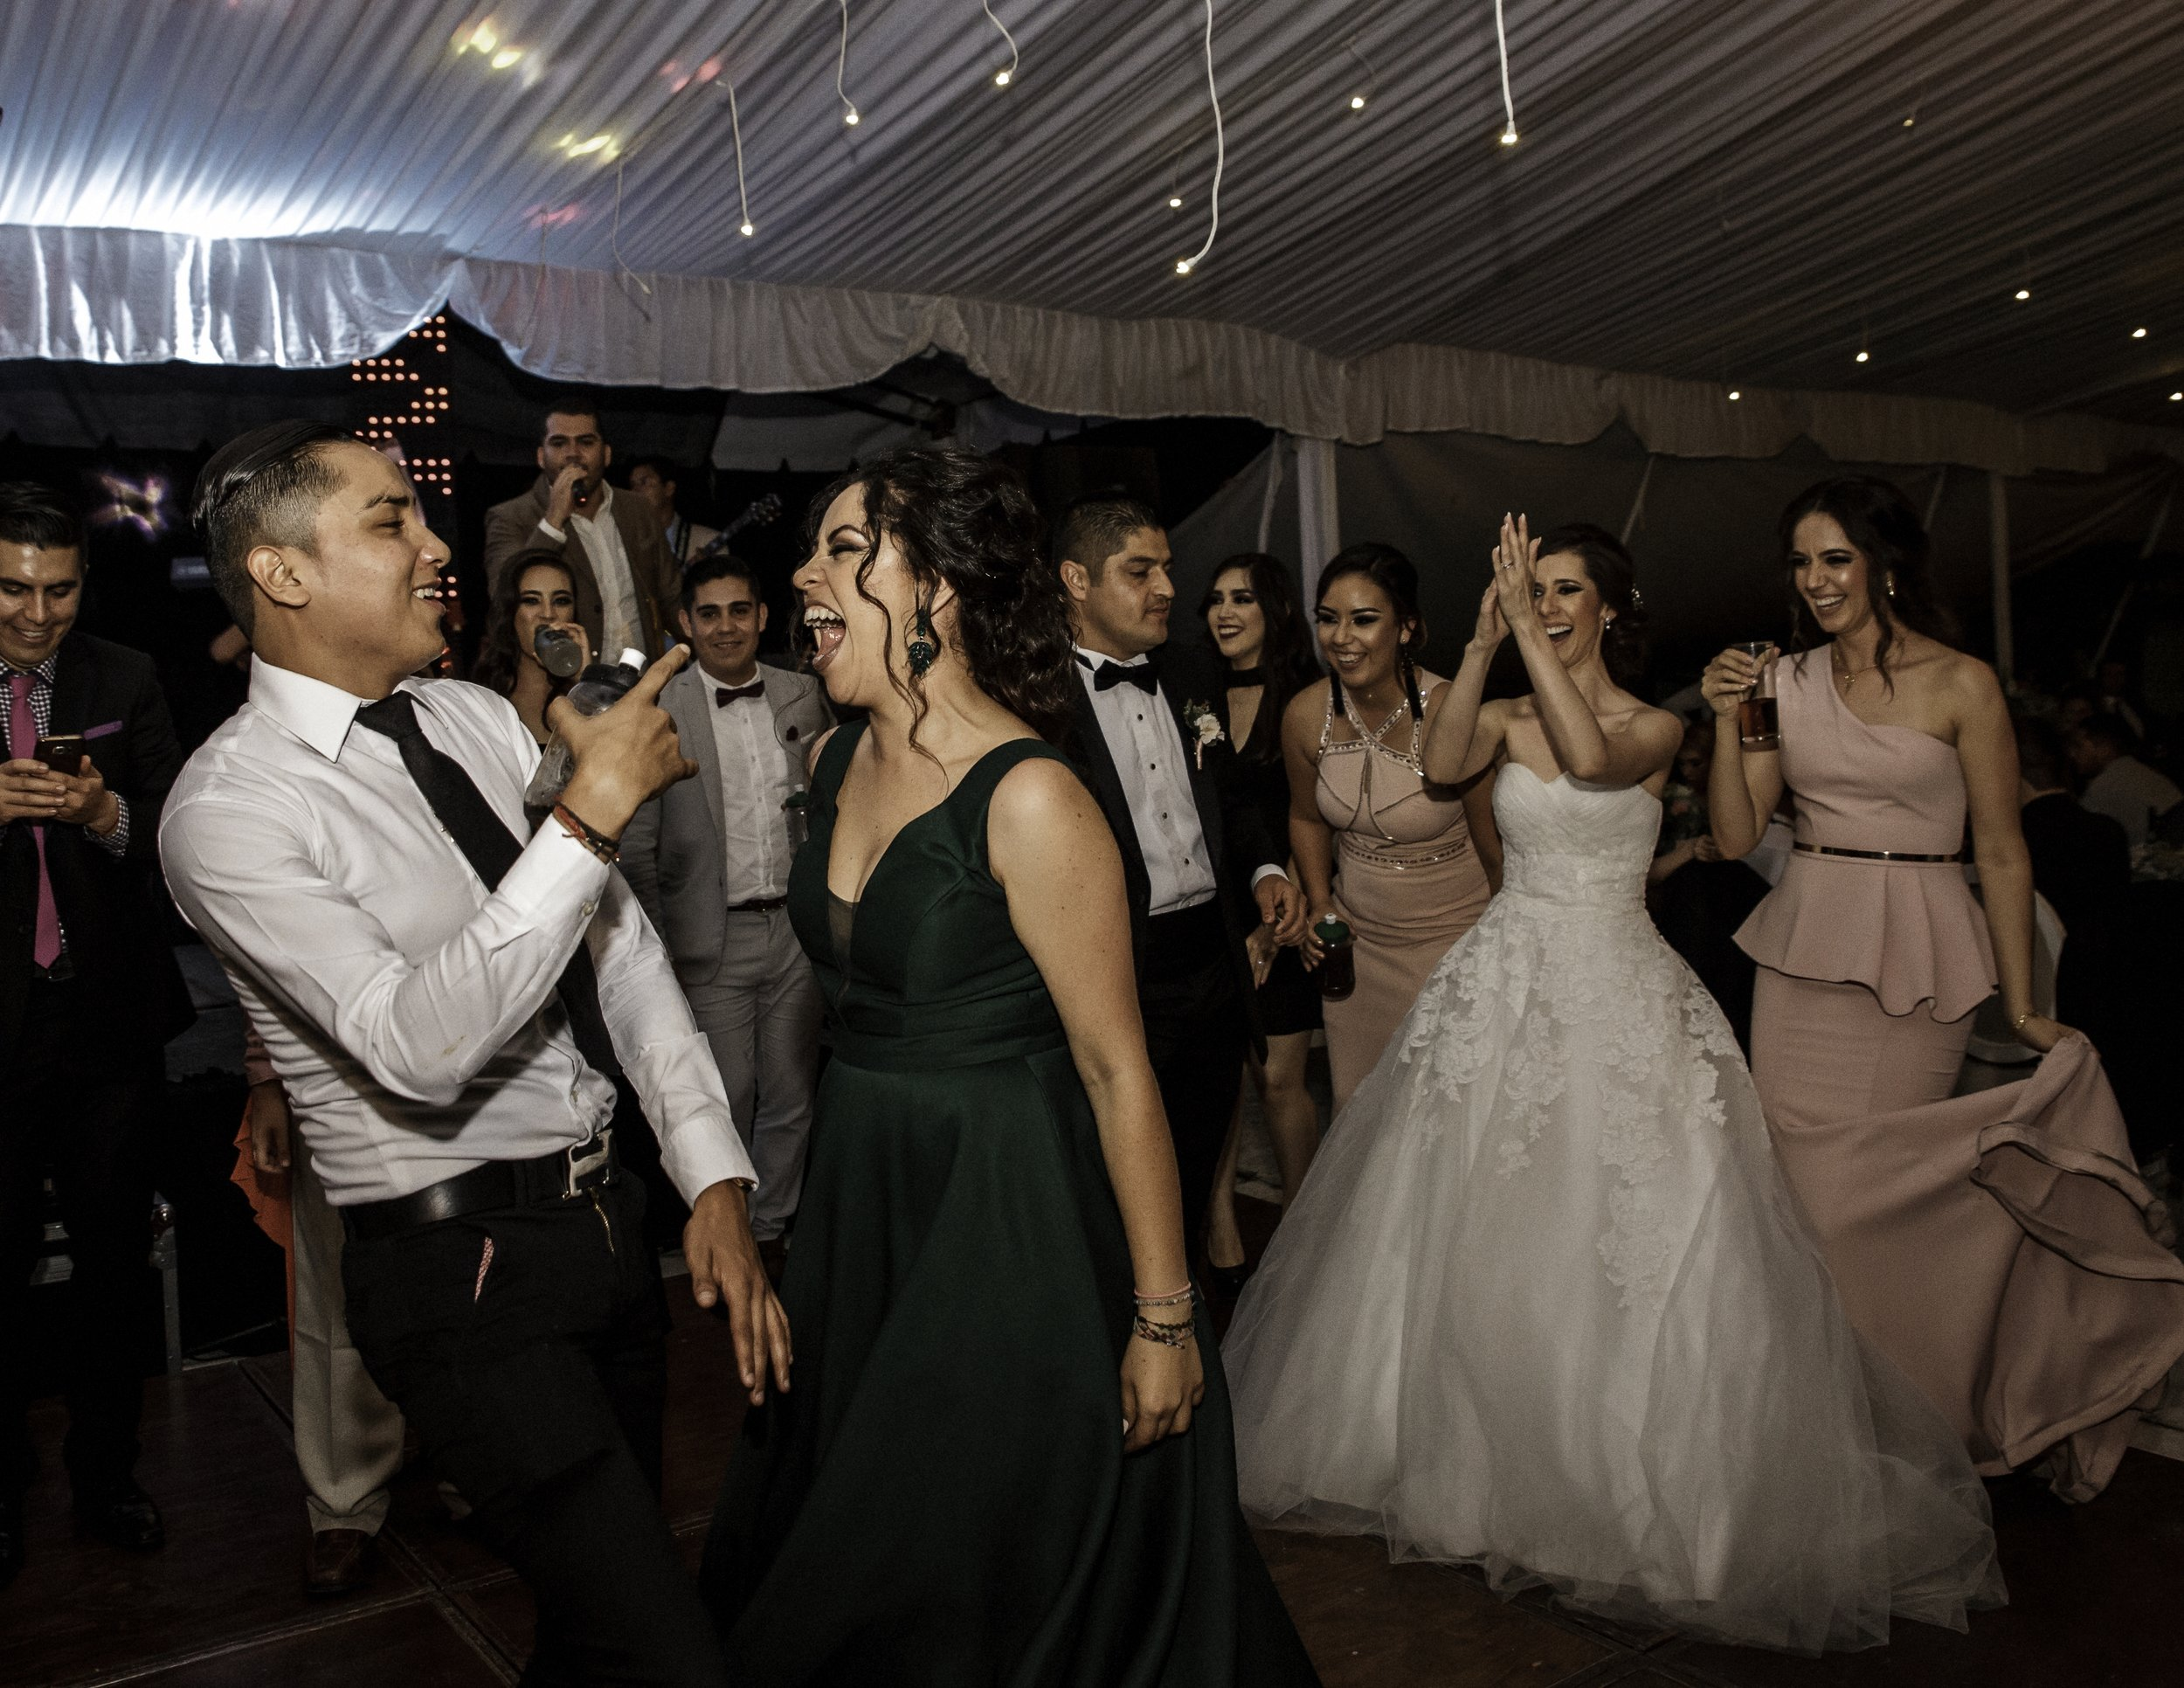 ODEMARIS_DANIEL-147carotida_photographer_boda_wedding.jpg